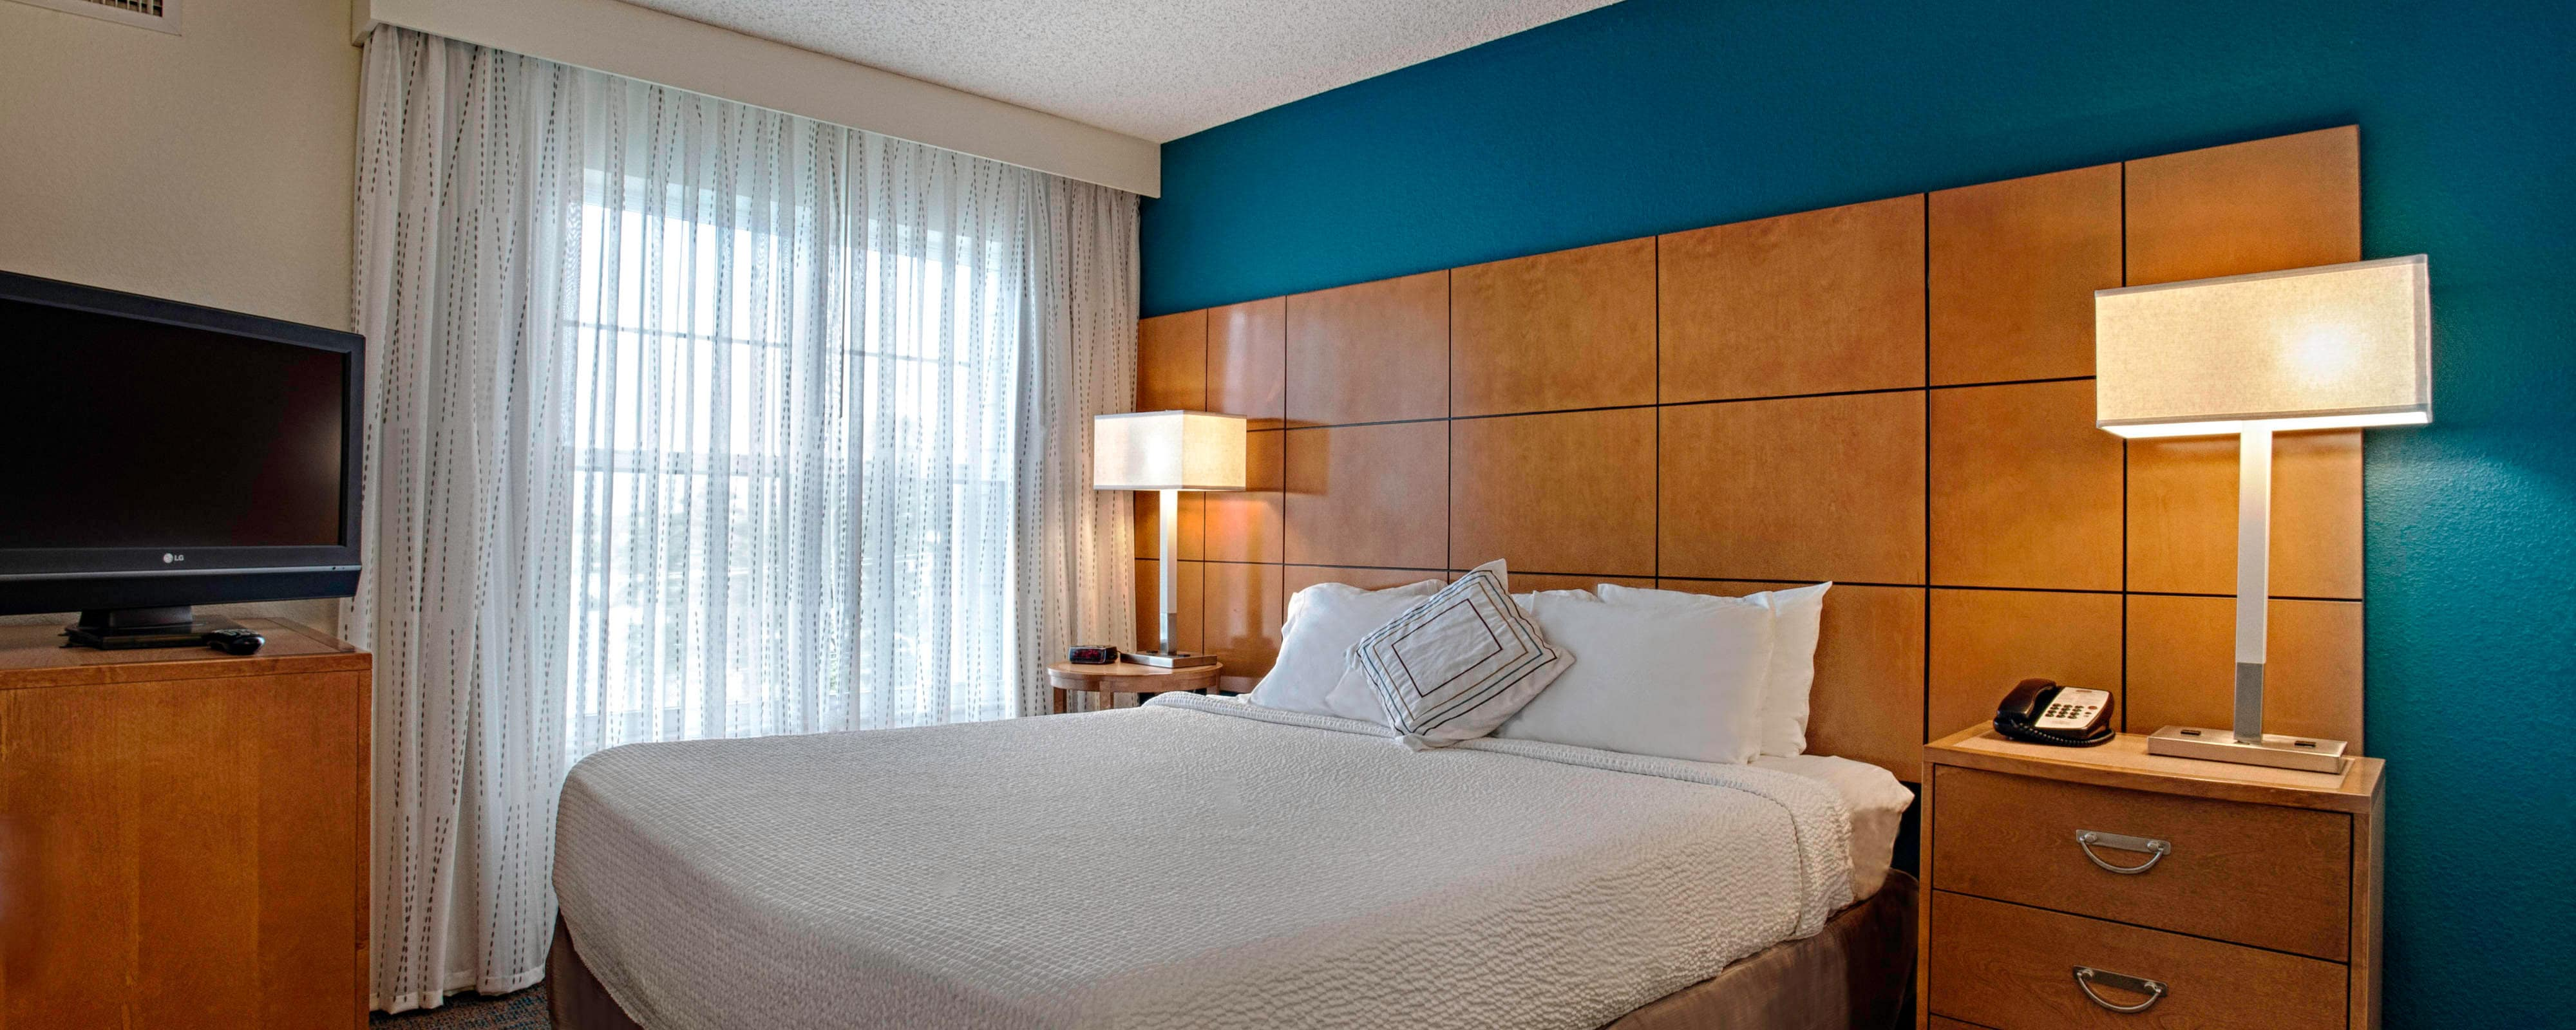 Egg Harbor New Jersey Hotel Two-Bedroom Suite